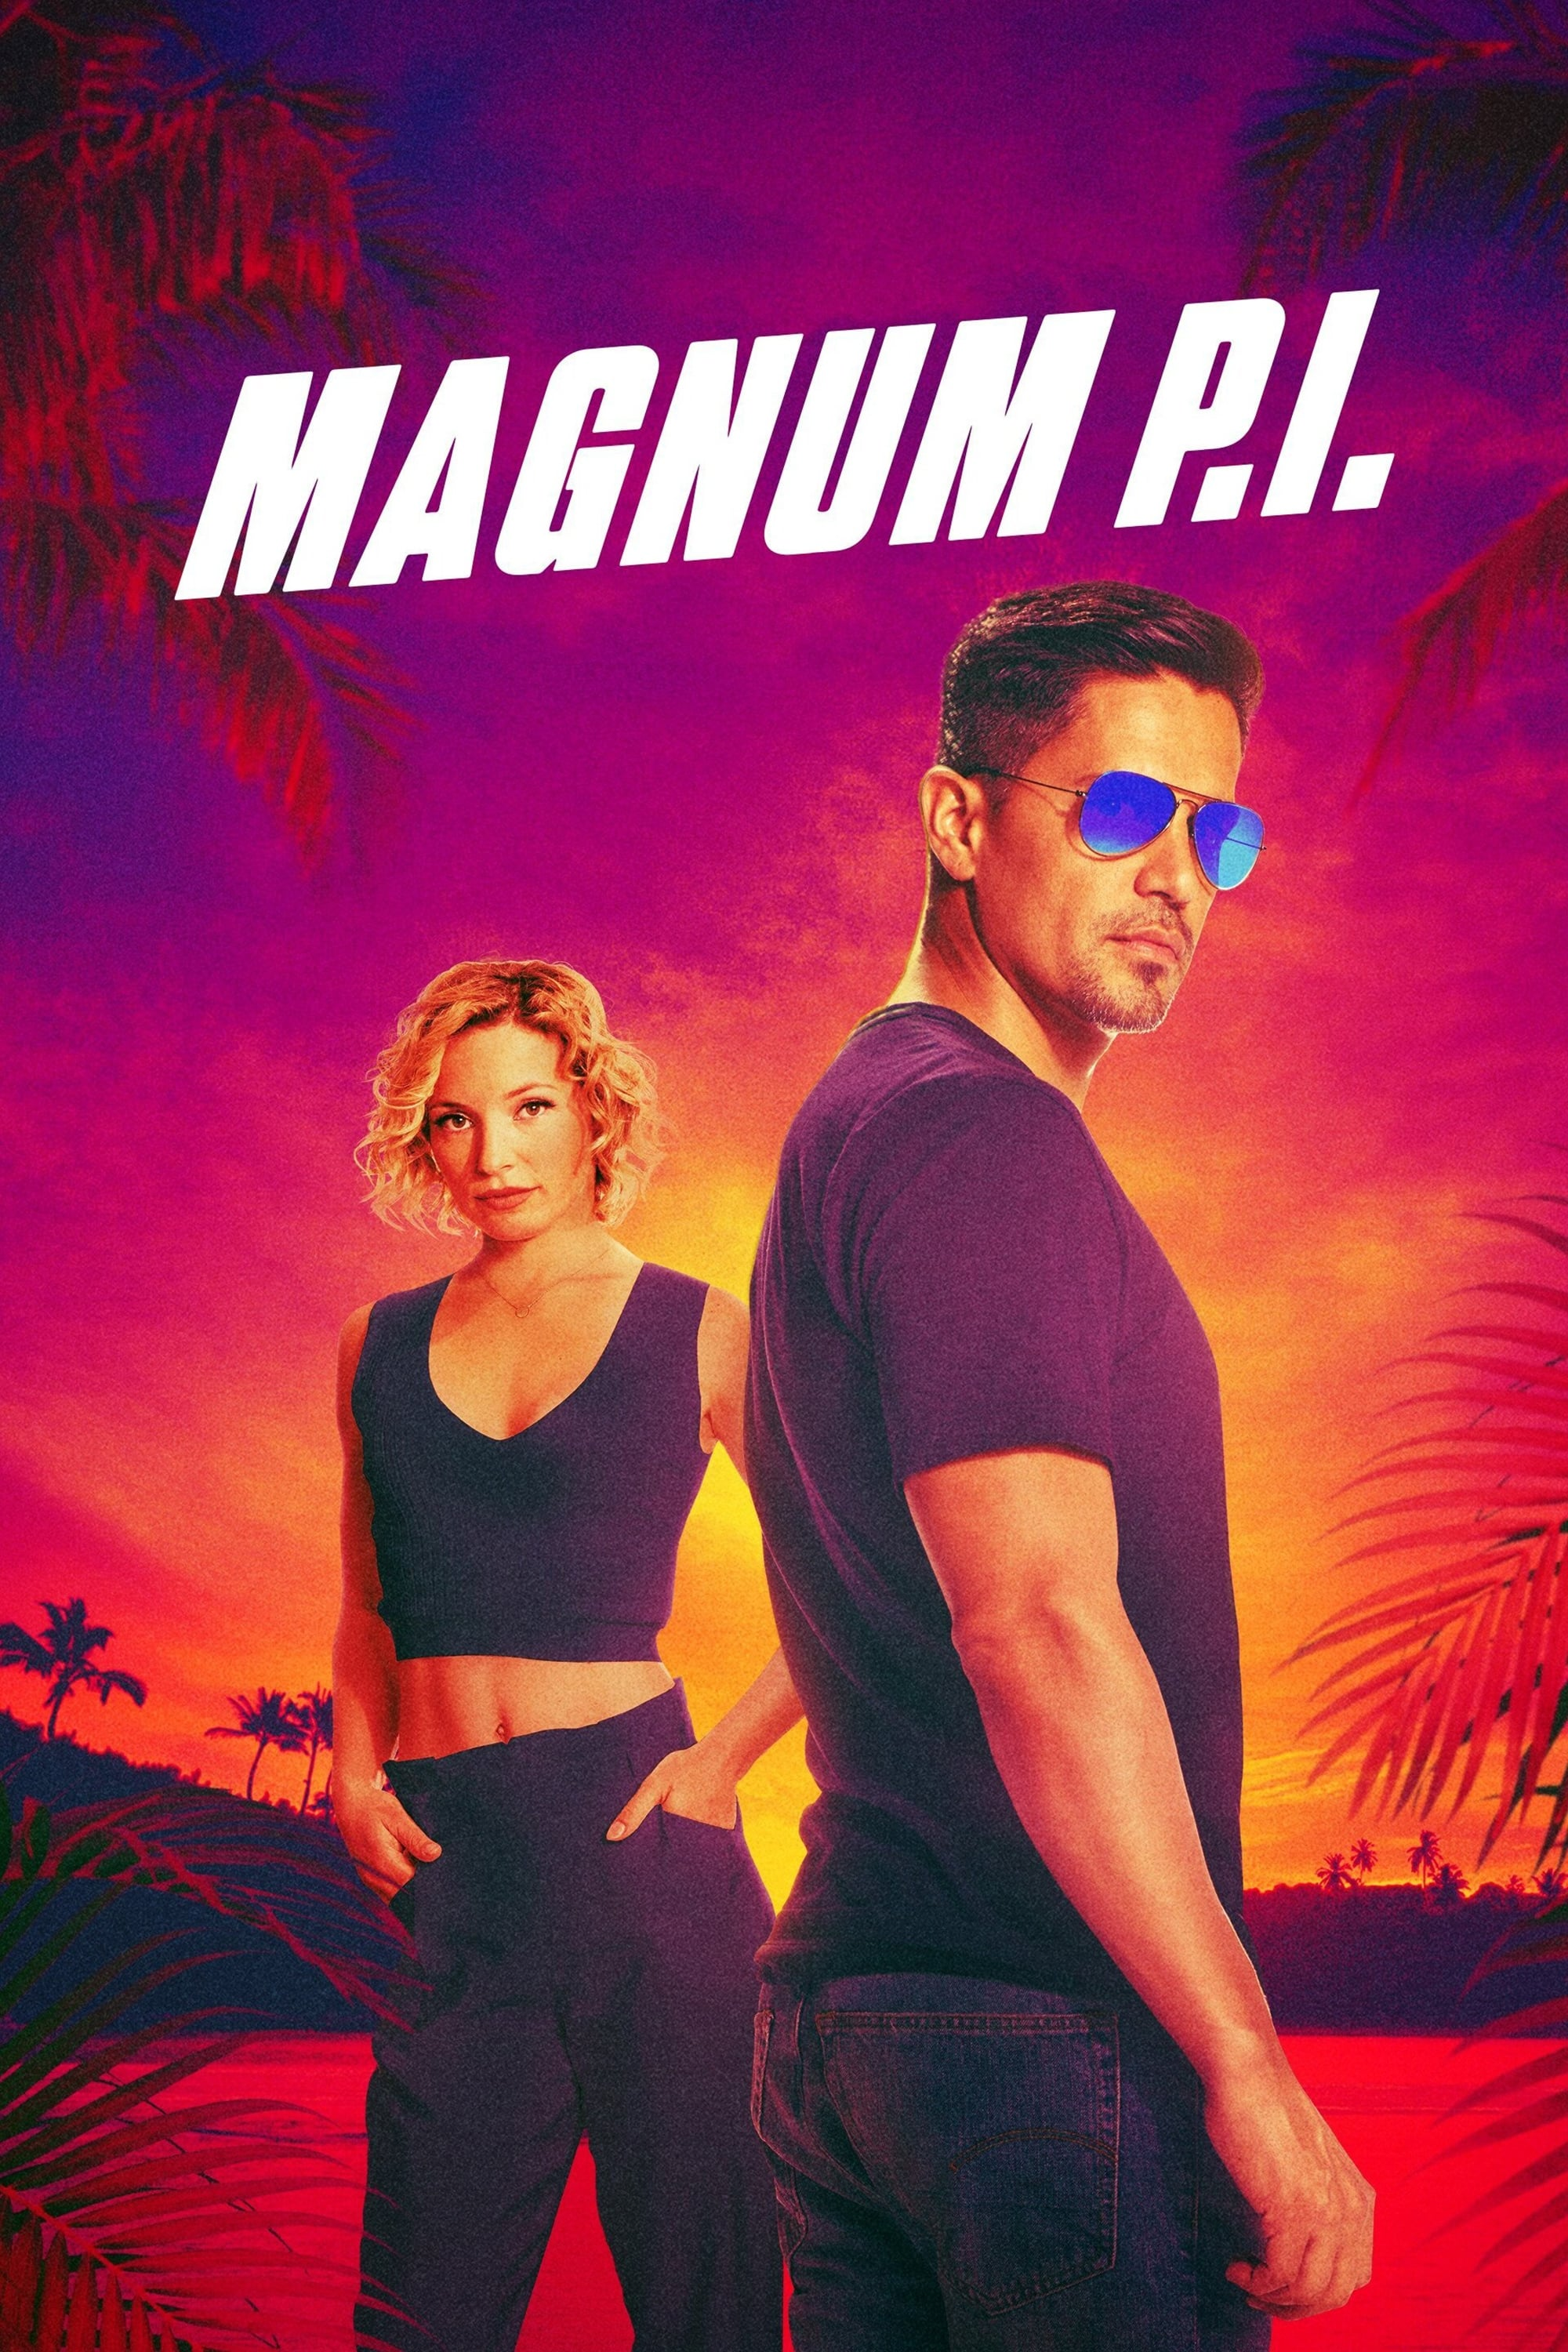 Magnum P.I. TV Shows About Hawaii